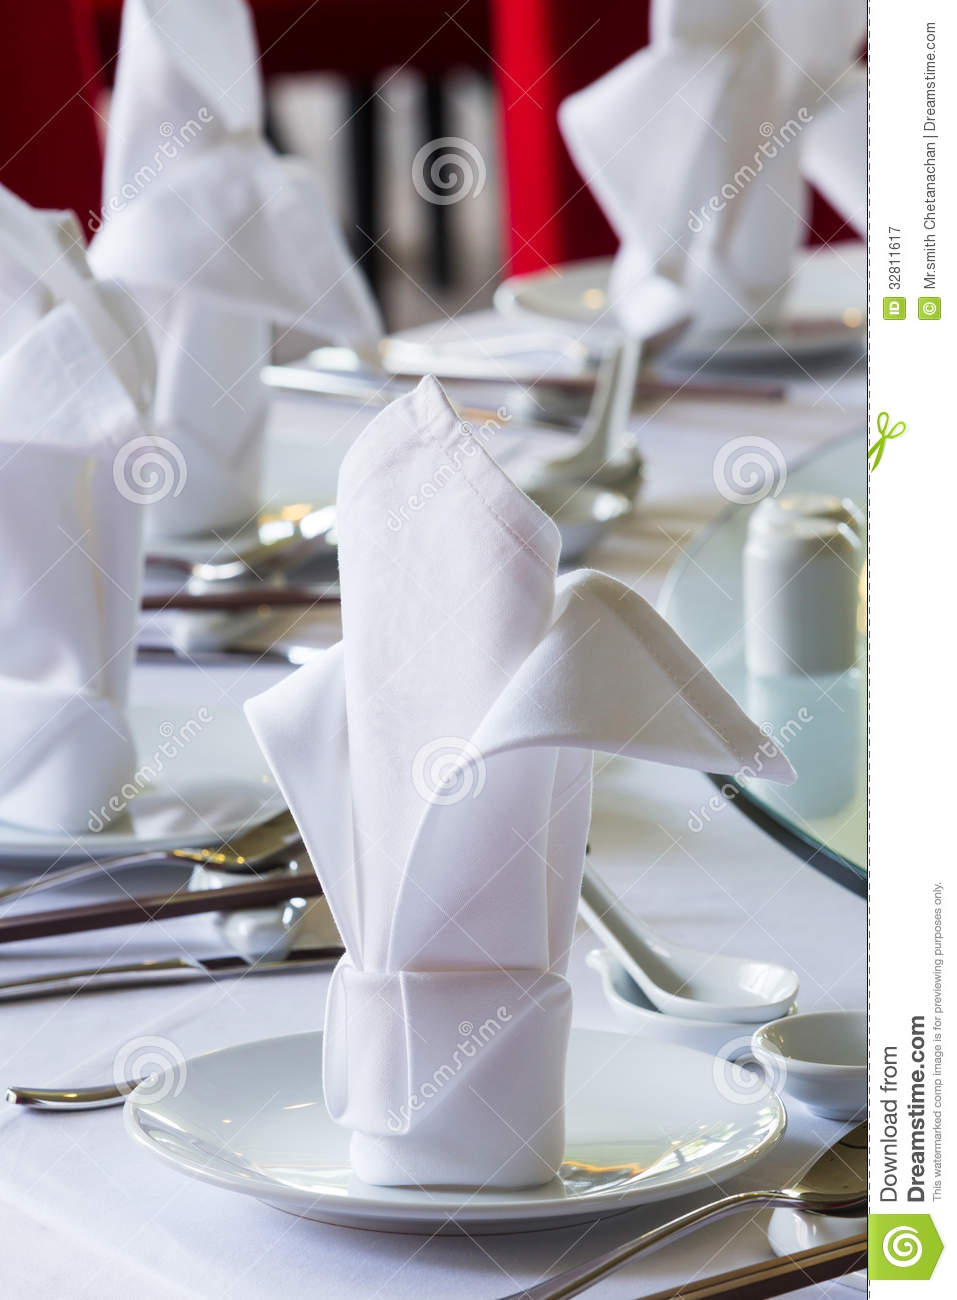 Chinese Dining Table Setup Royalty Free Stock Photography